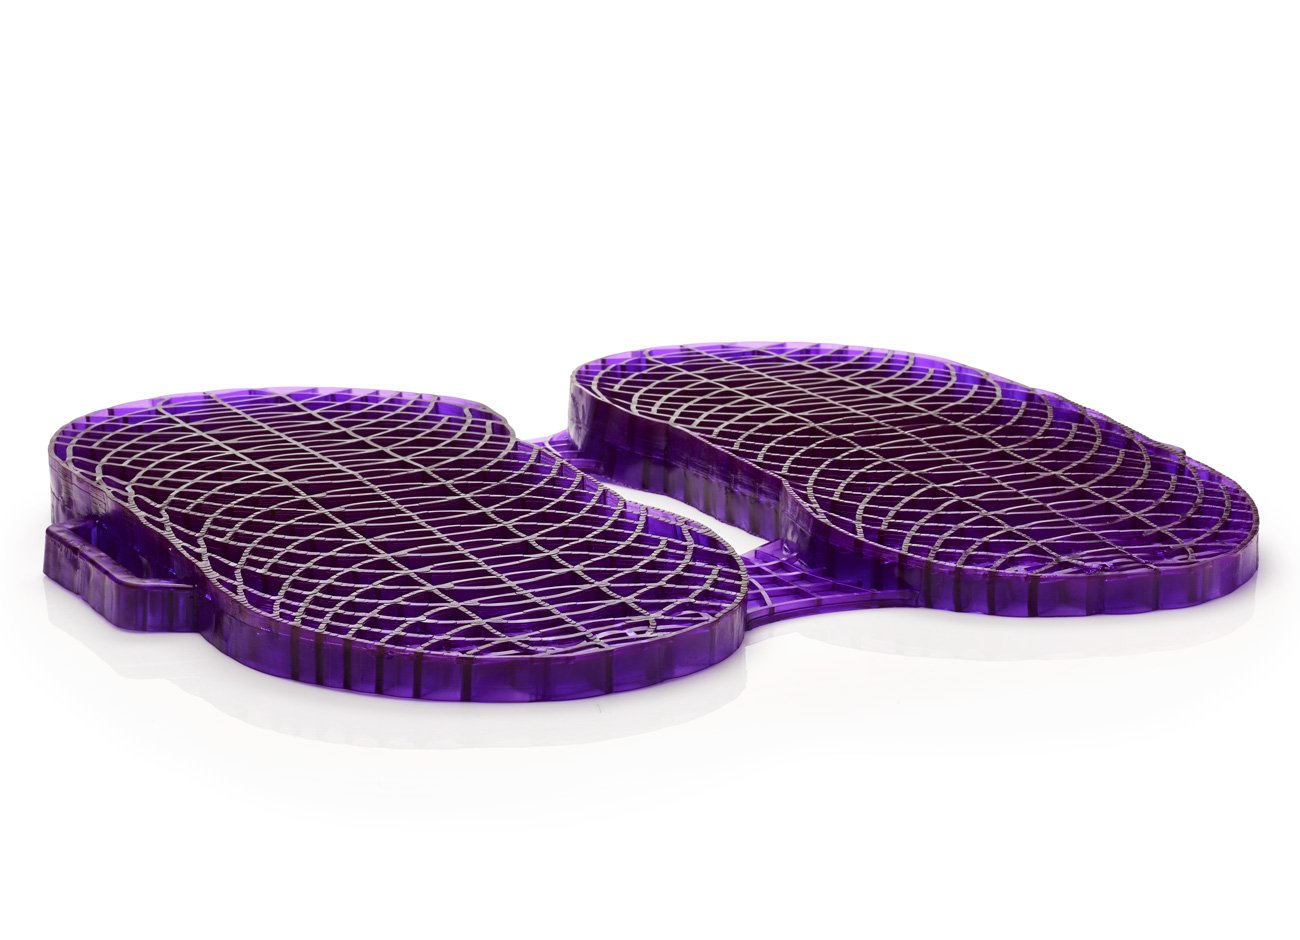 Purple Seat Cushion Everywhere   Seat Cushion For The Car Or Office Chair    Can Help